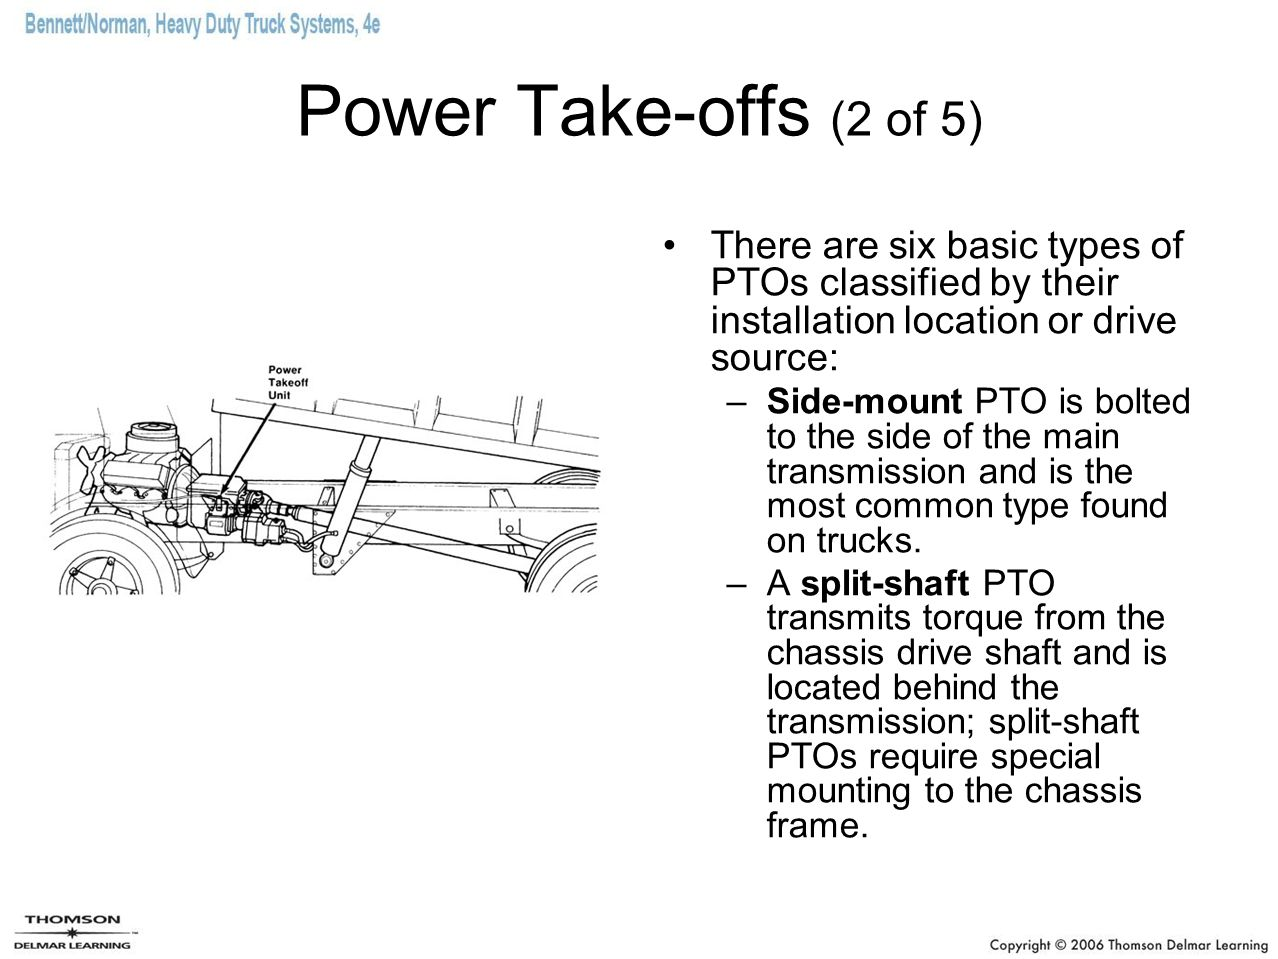 Power Take-offs (2 of 5) There are six basic types of PTOs classified by their installation location or drive source: